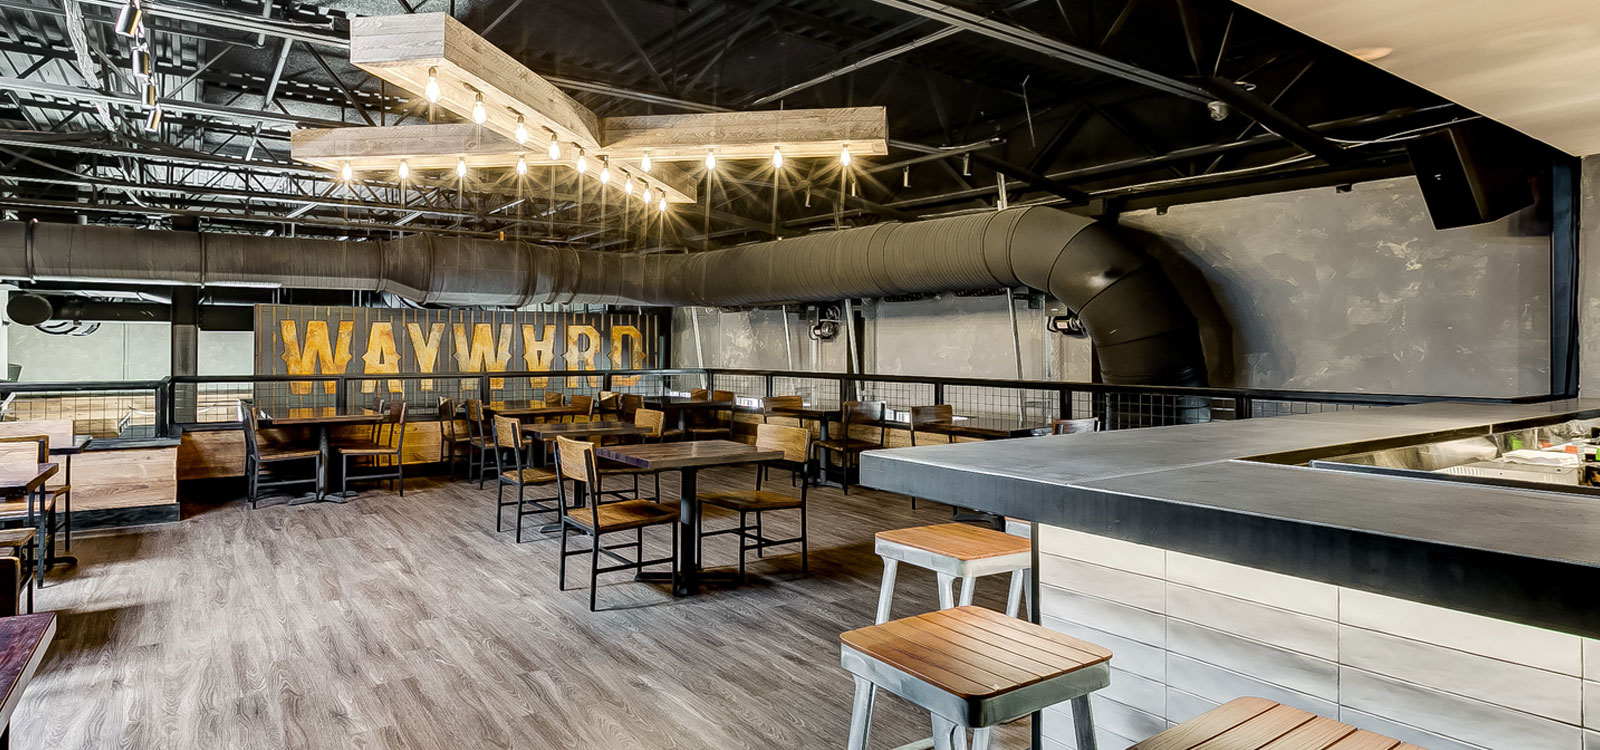 Wayward Smokehouse and Curious Oyster Restaurants, The Avenue at White Marsh, commercial renovation by UrbanBuilt